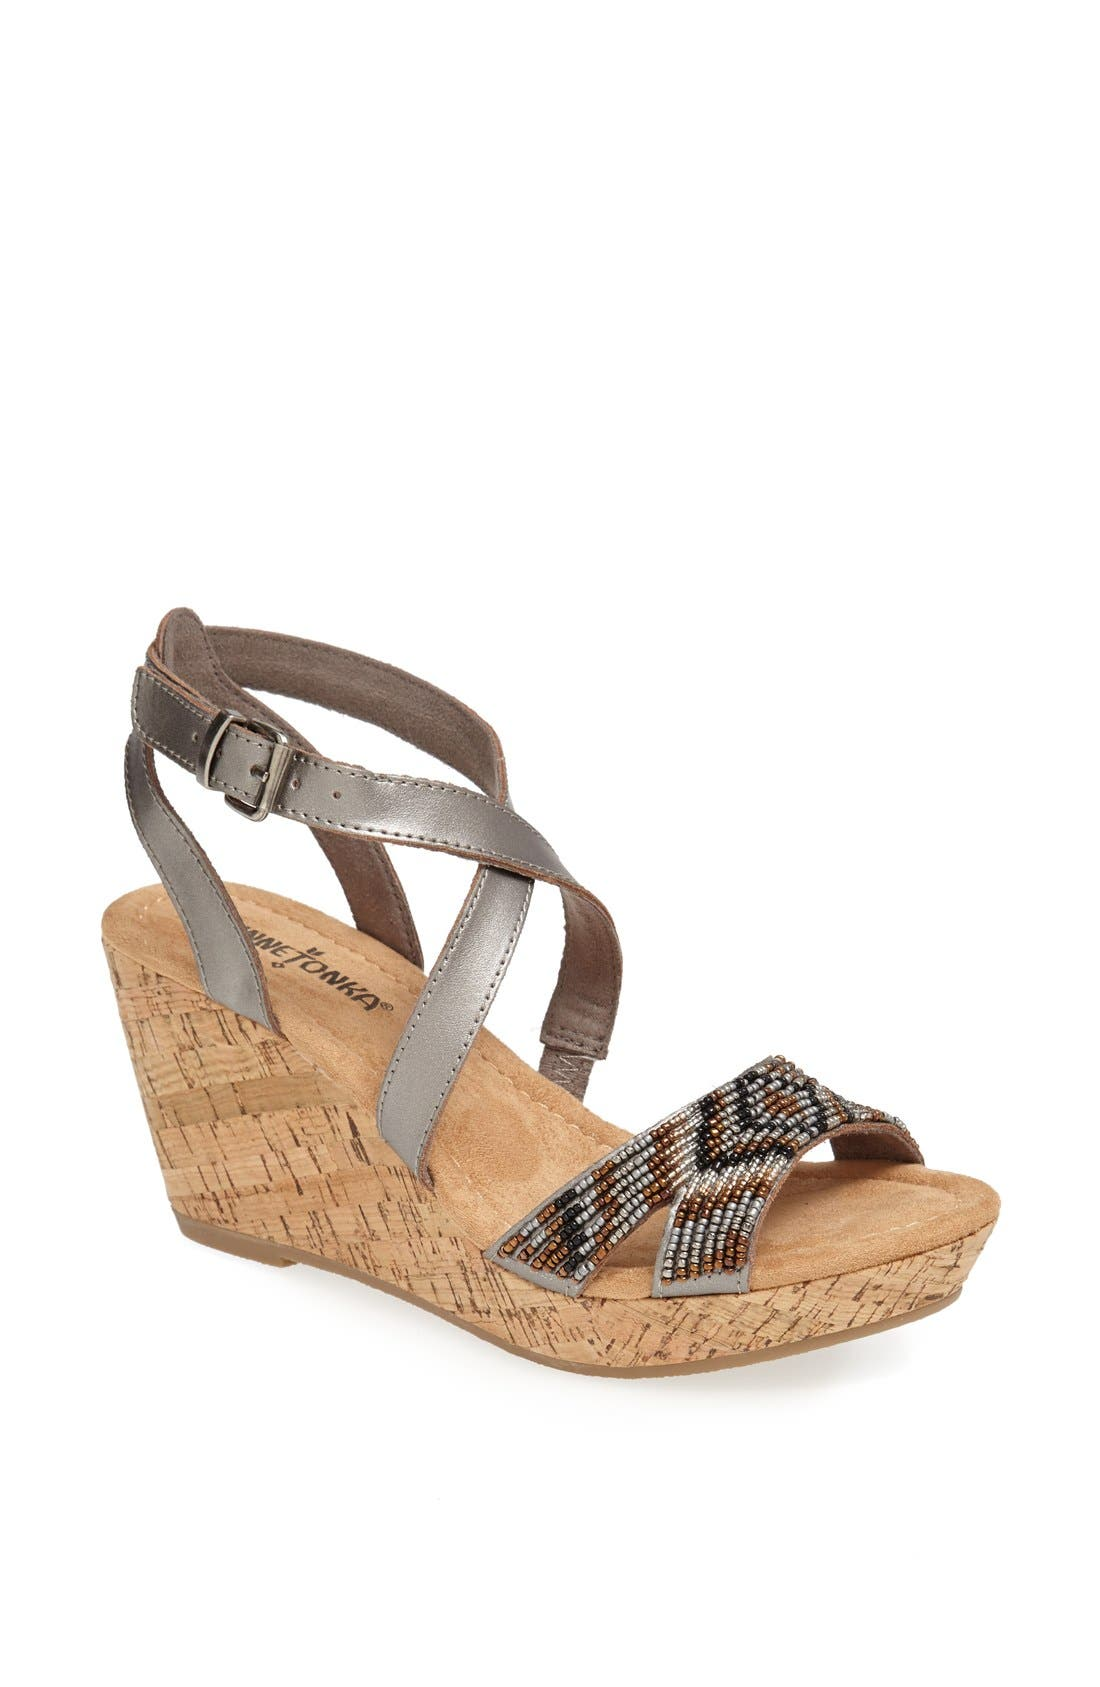 Alternate Image 1 Selected - Minnetonka 'Zoey' Sandal